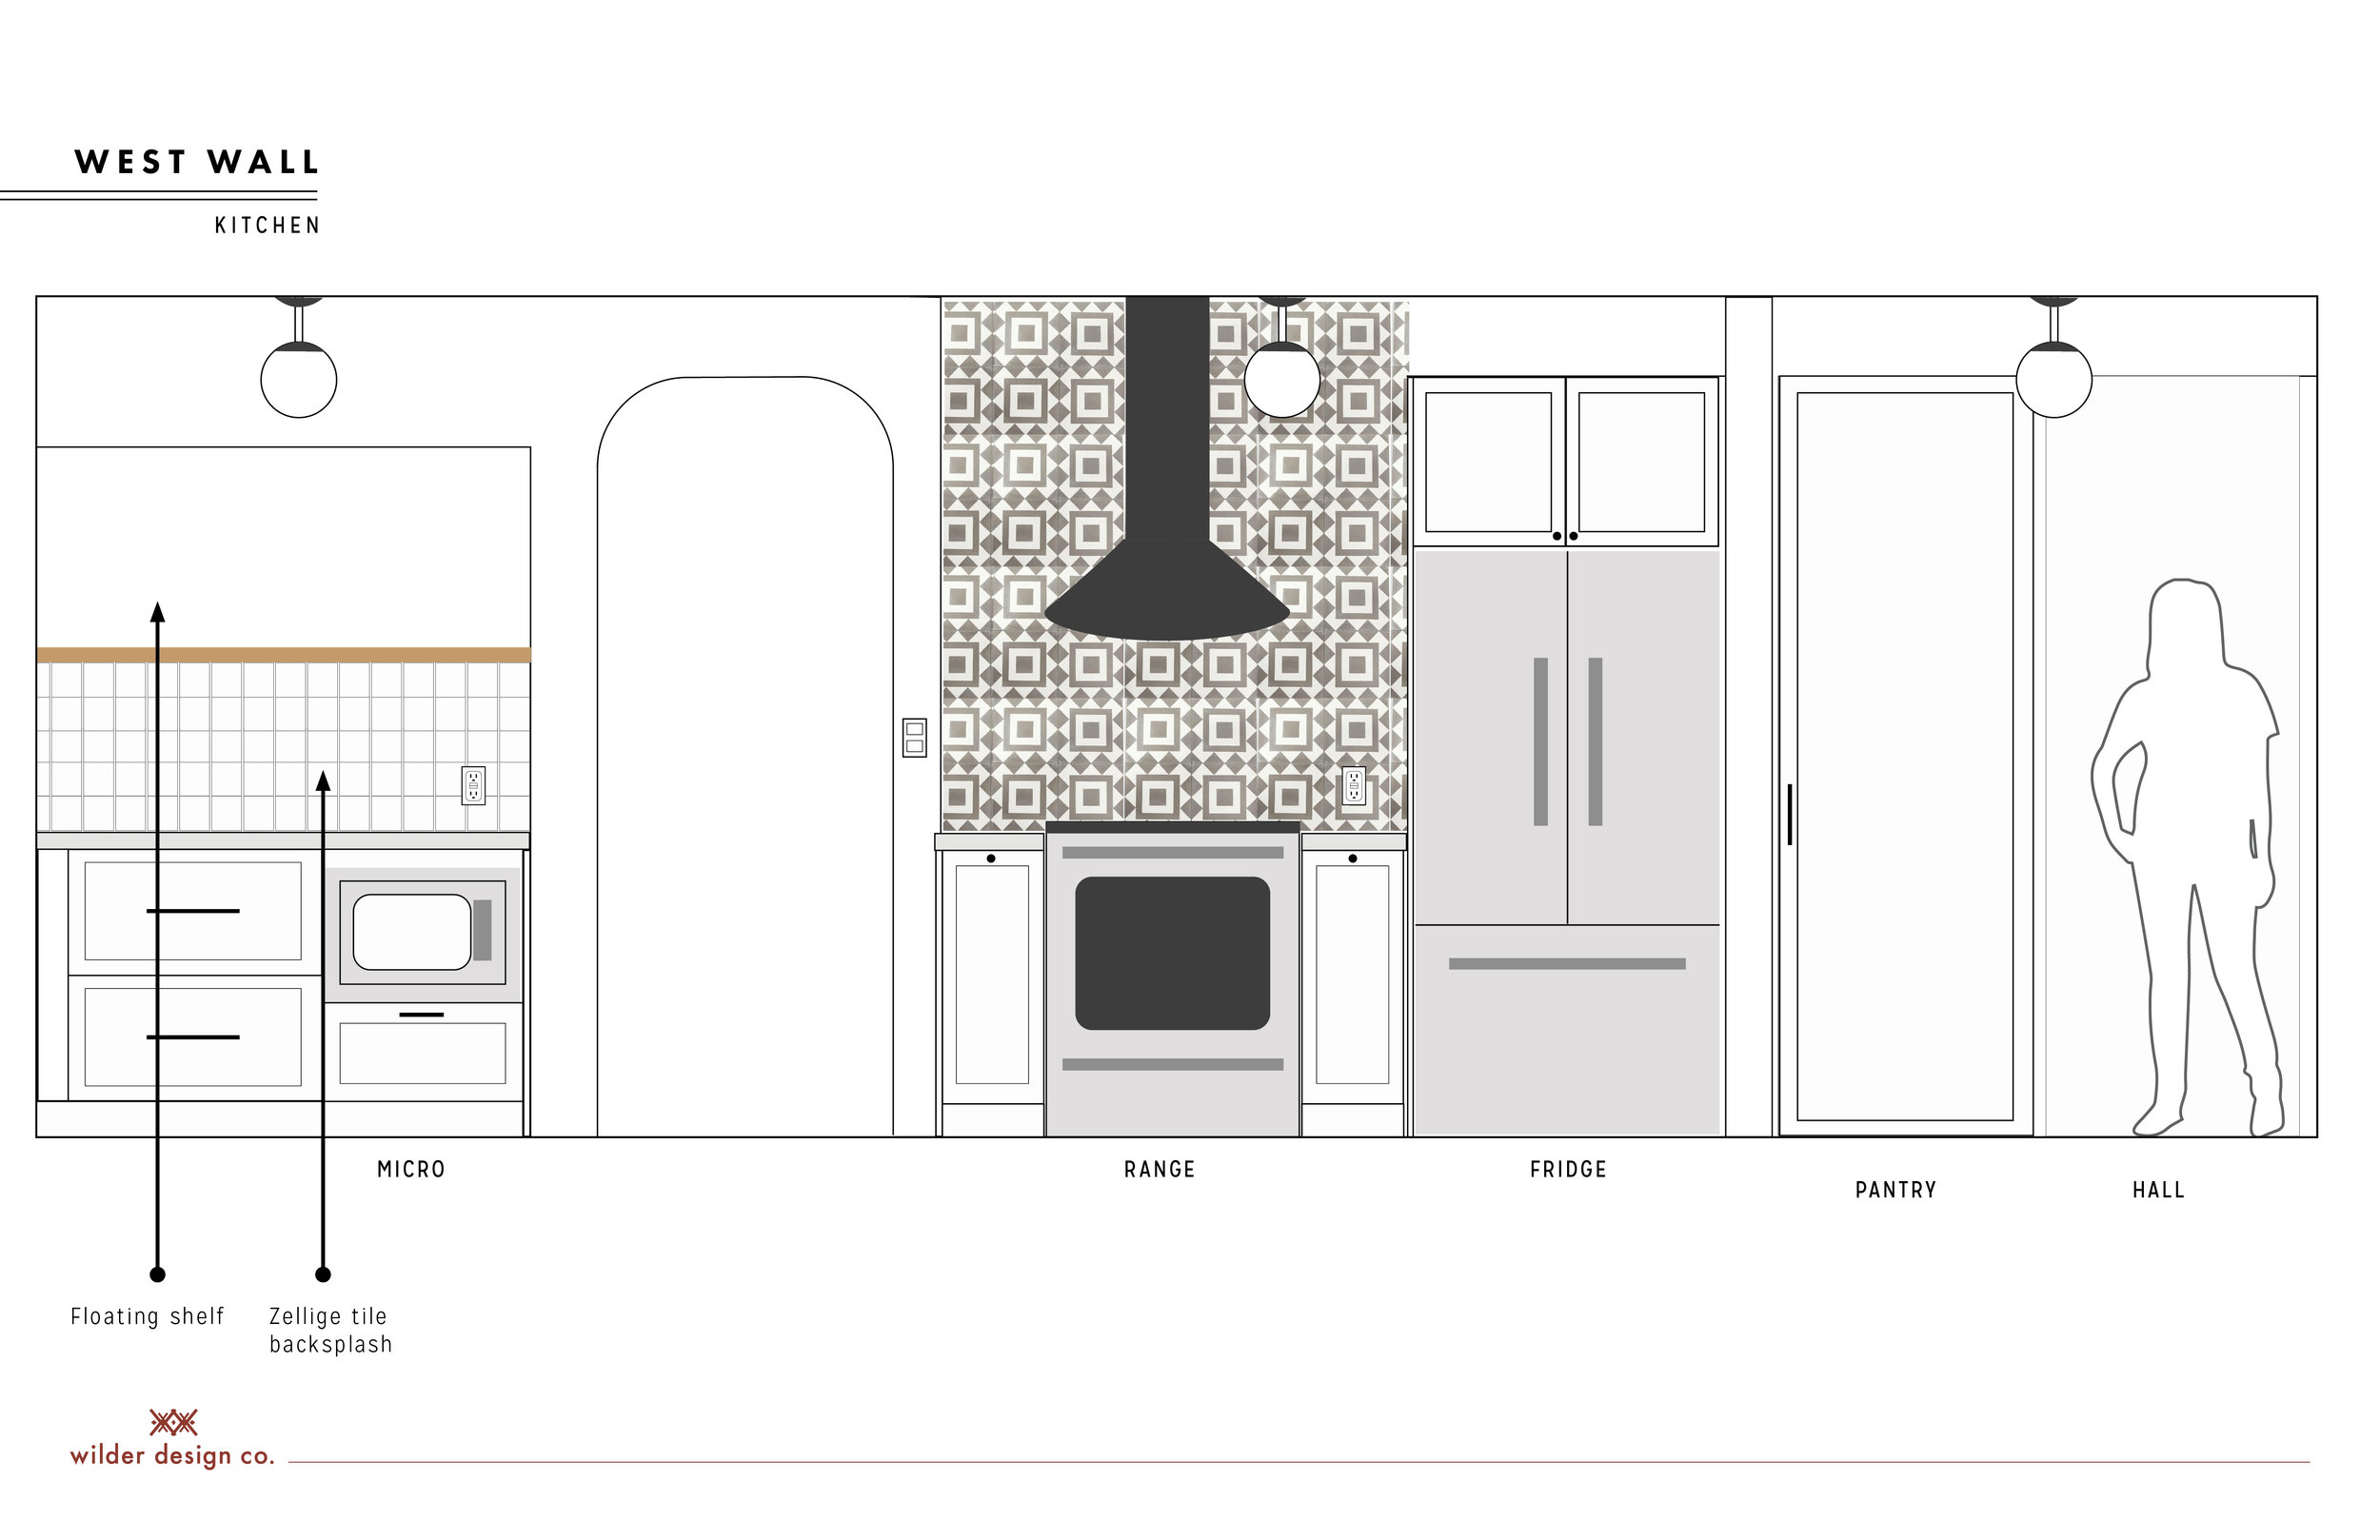 Kitchen_Plan_0430189.jpg